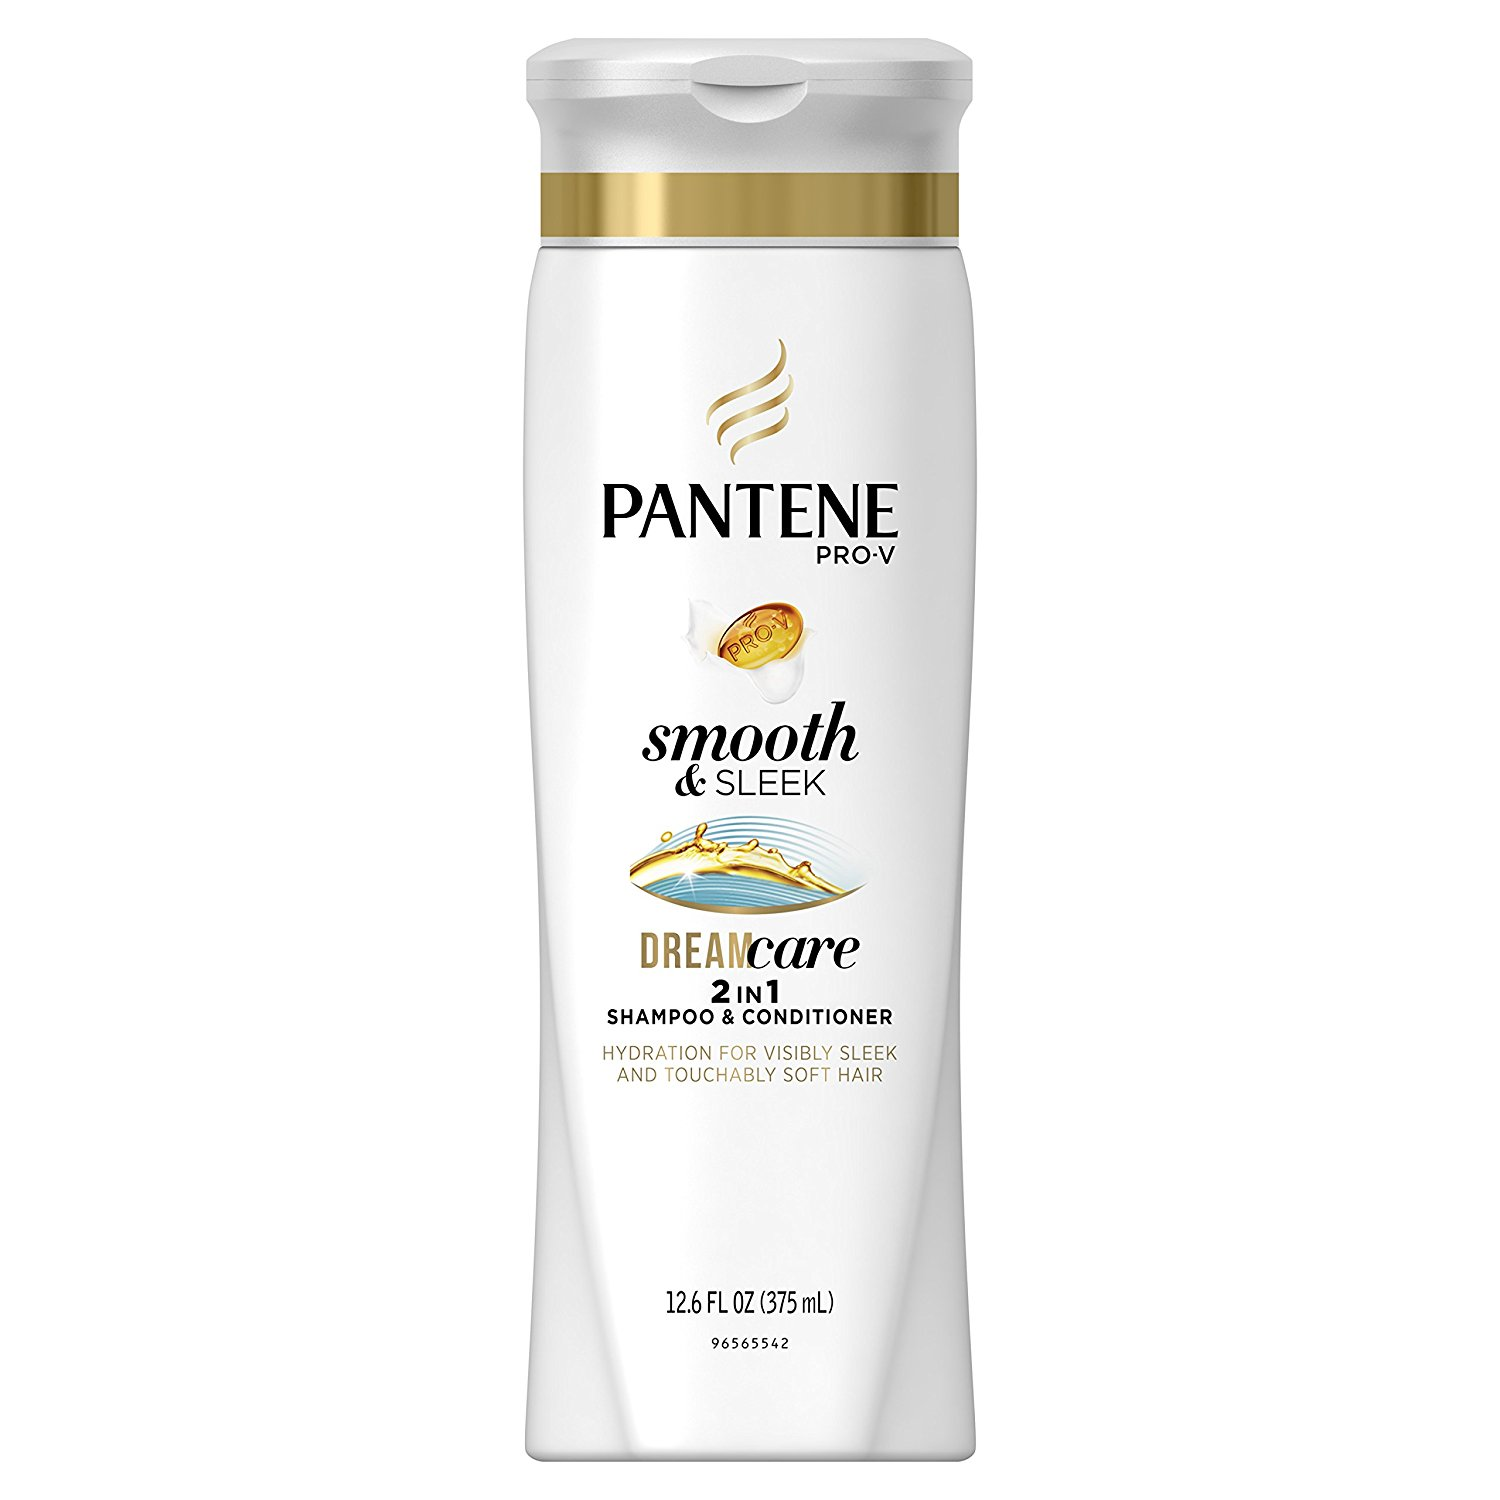 Pantene Pro-V Smooth & Sleek 2 in 1 Shampoo & Conditioner, 12.6 fl oz